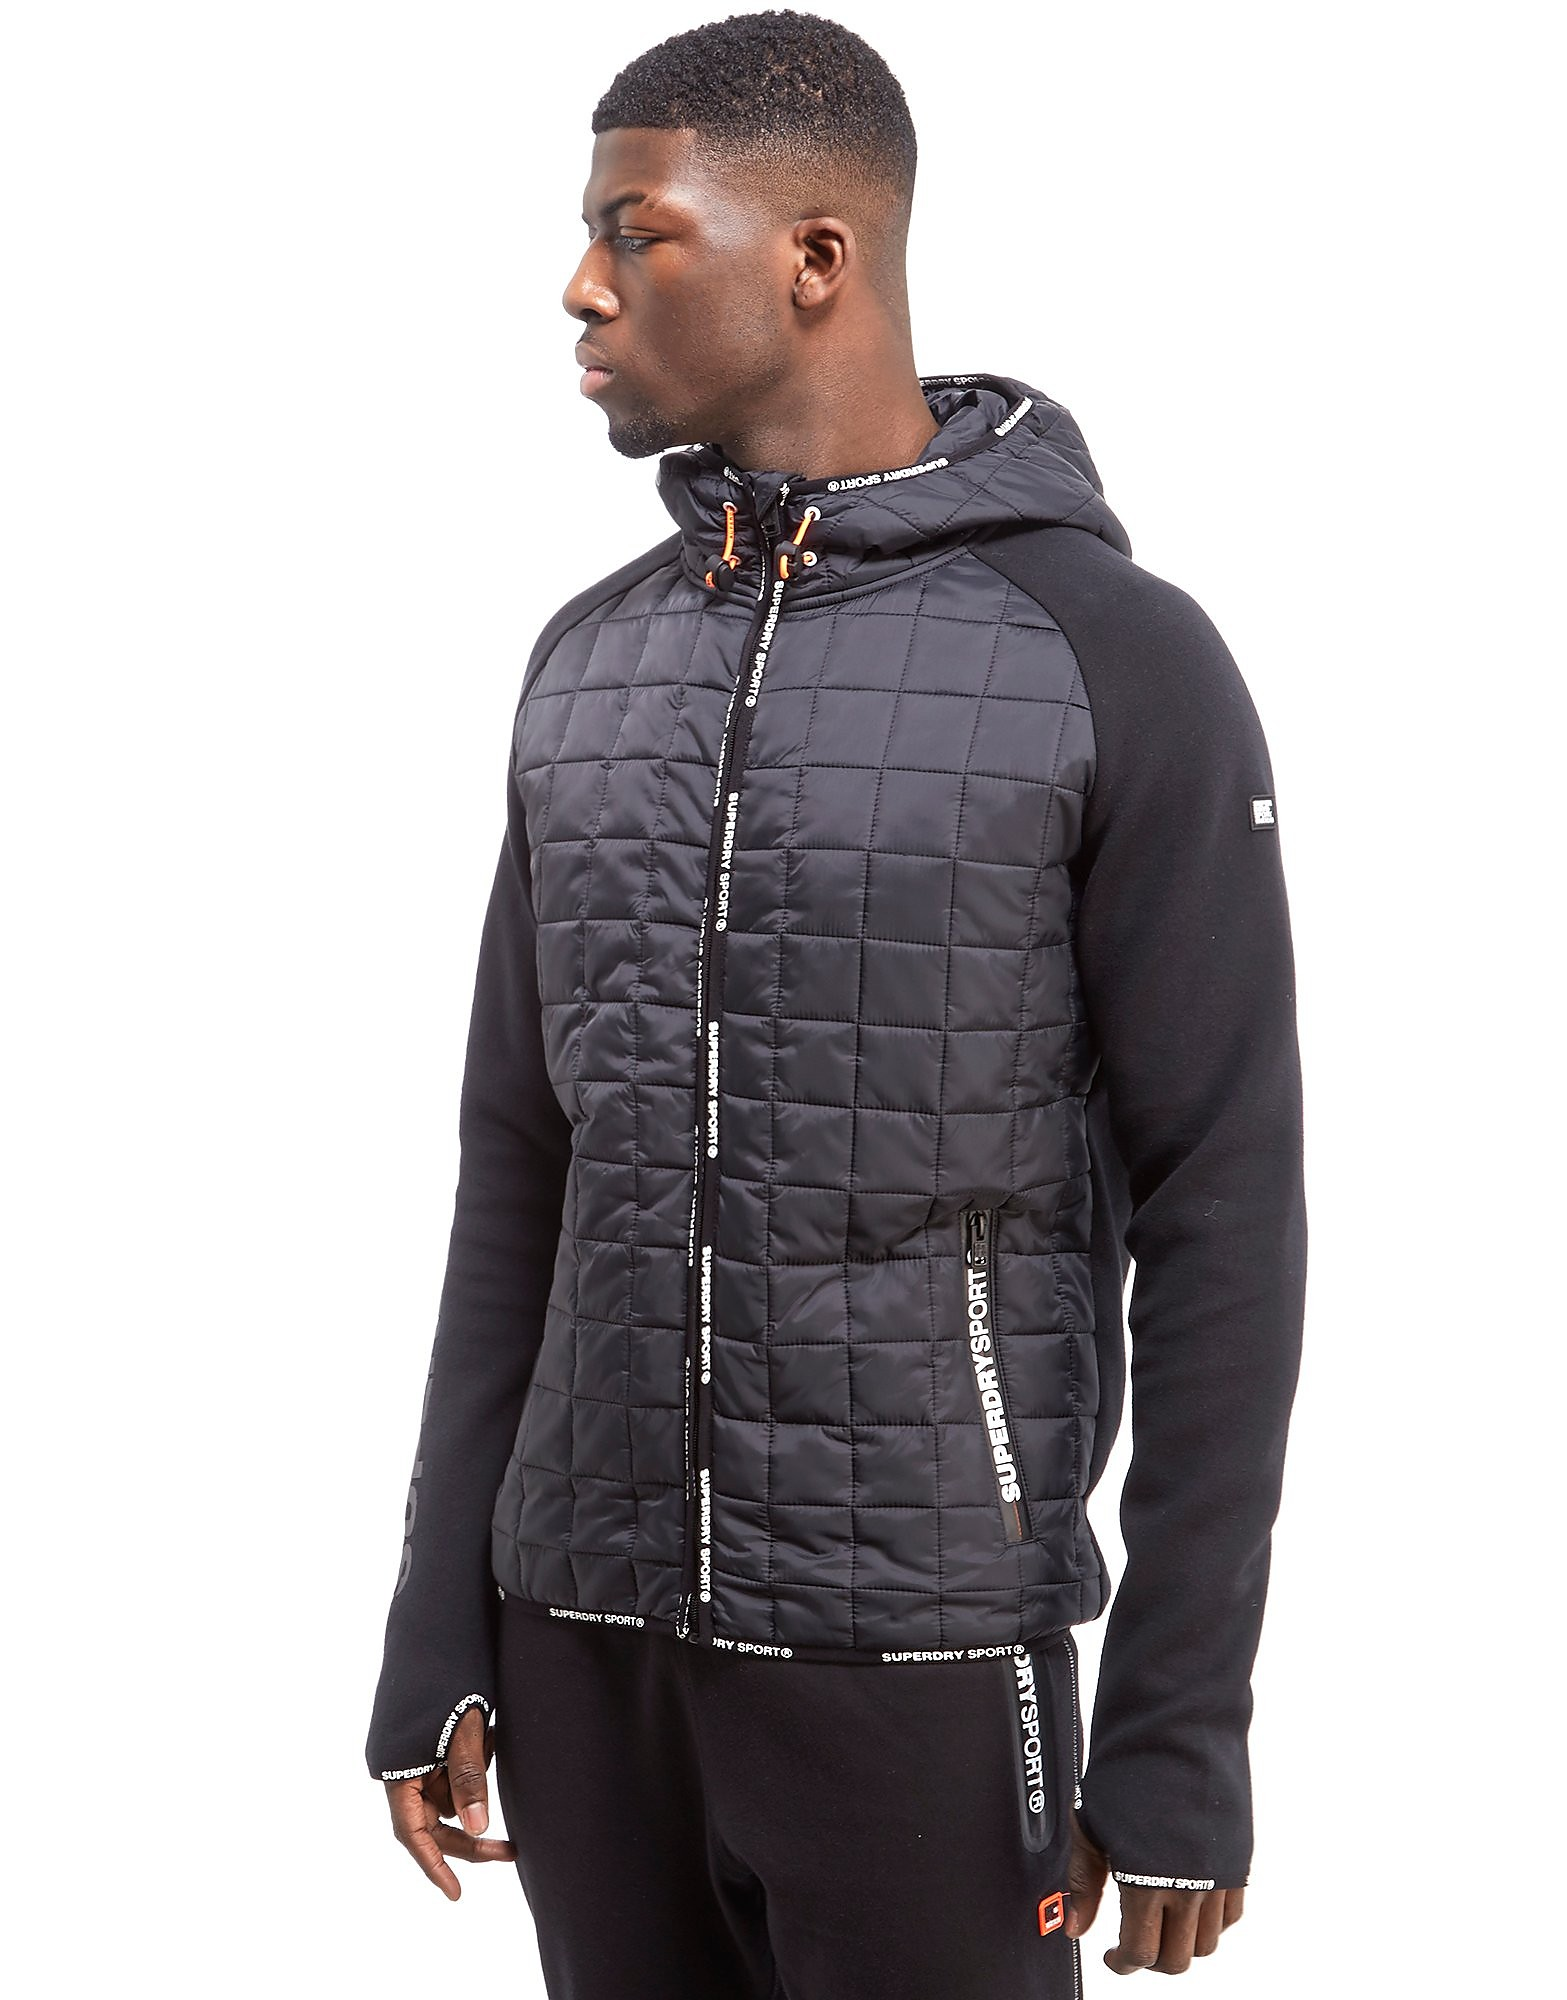 Superdry Gym Tech Hybrid Zip Hooded Jacket